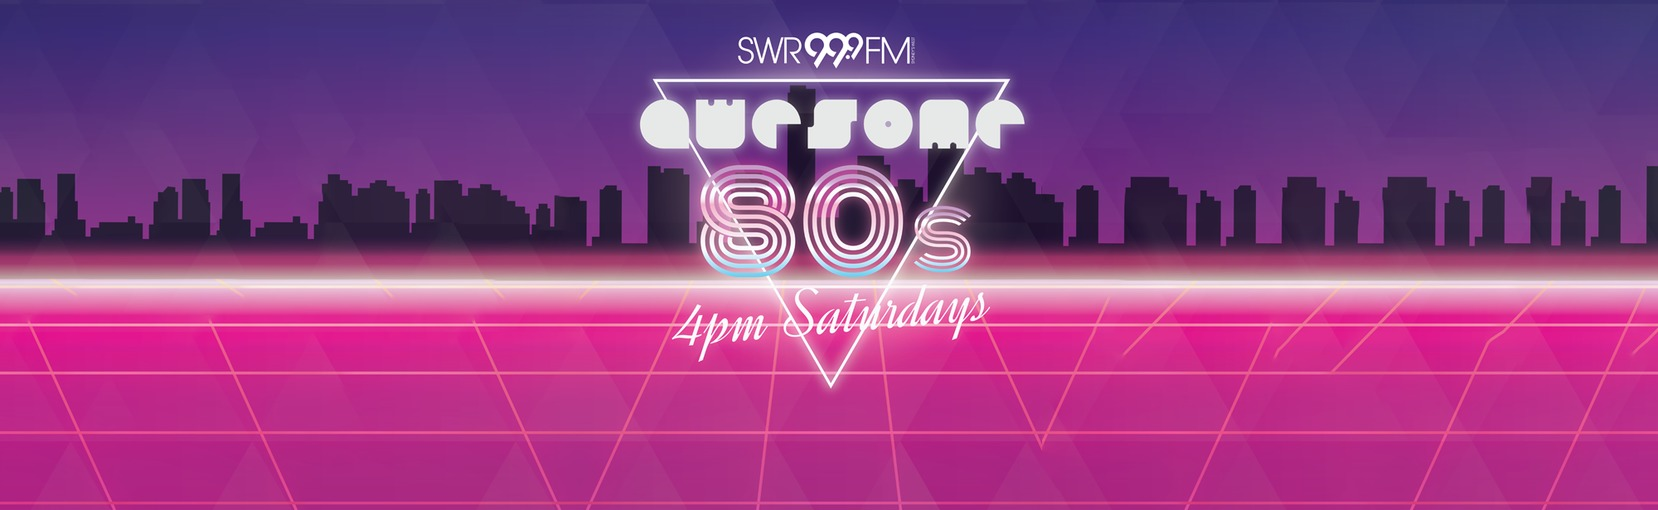 Awesome 80's with Tim Williams on SWR 99.9 FM